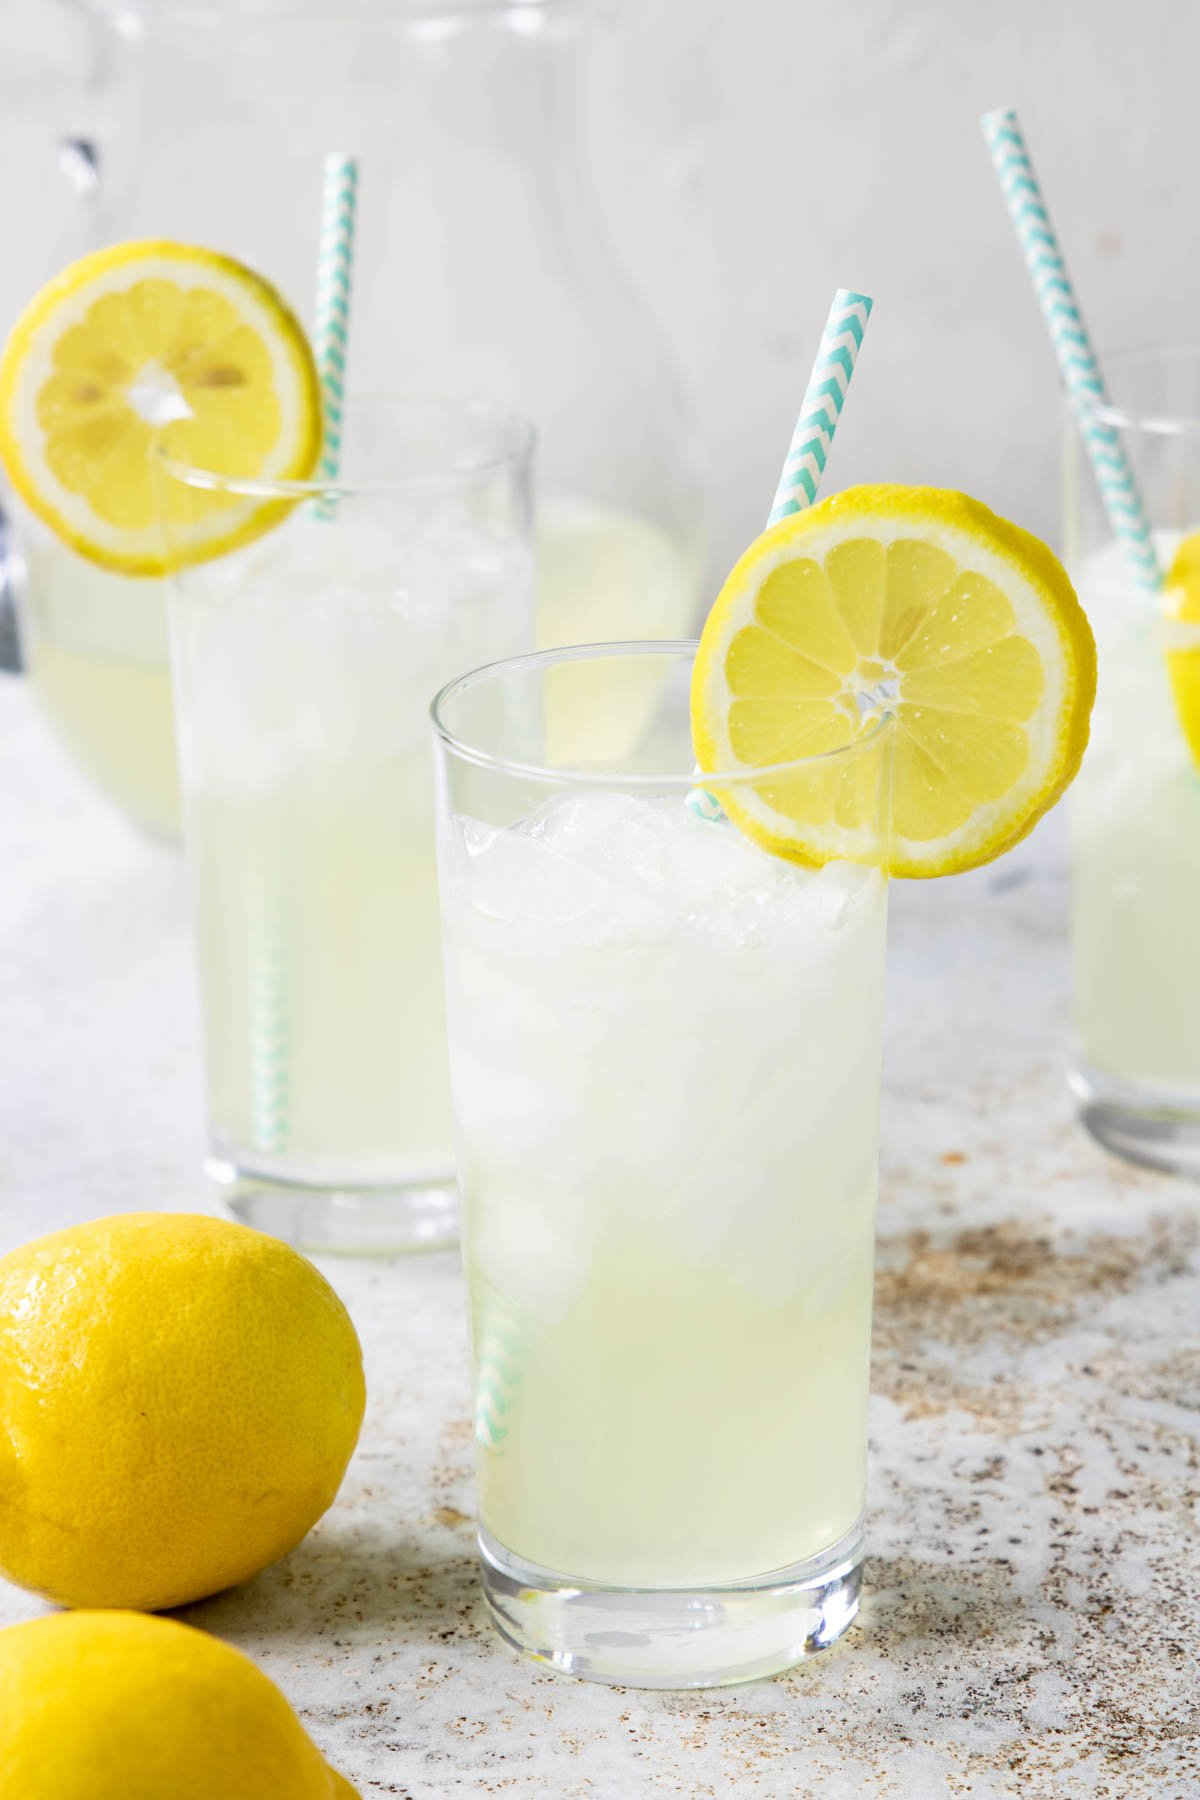 fresh squeezed lemonade in a glass with a lemon wheel and a blue paper straw